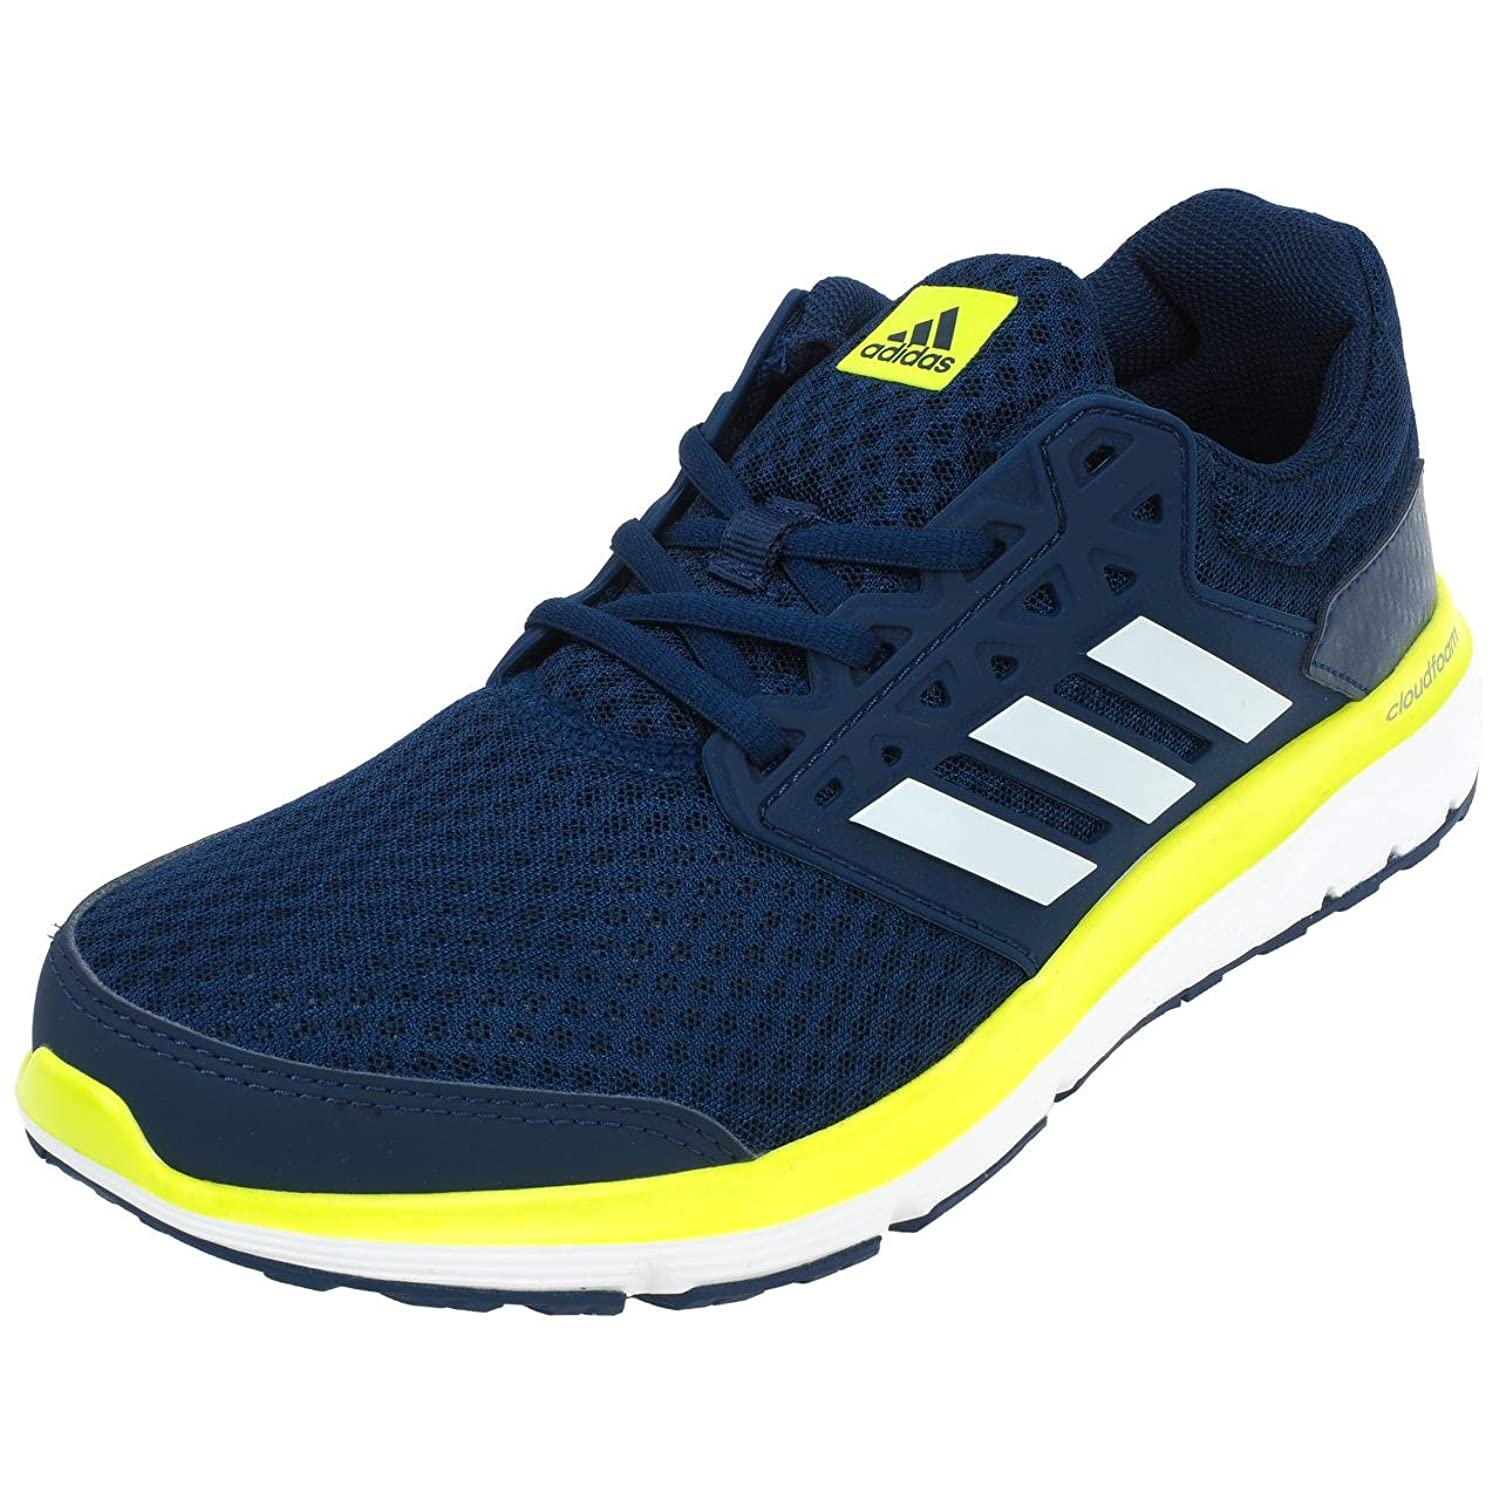 adidas Galaxy 3 M, Chaussures de Course Homme